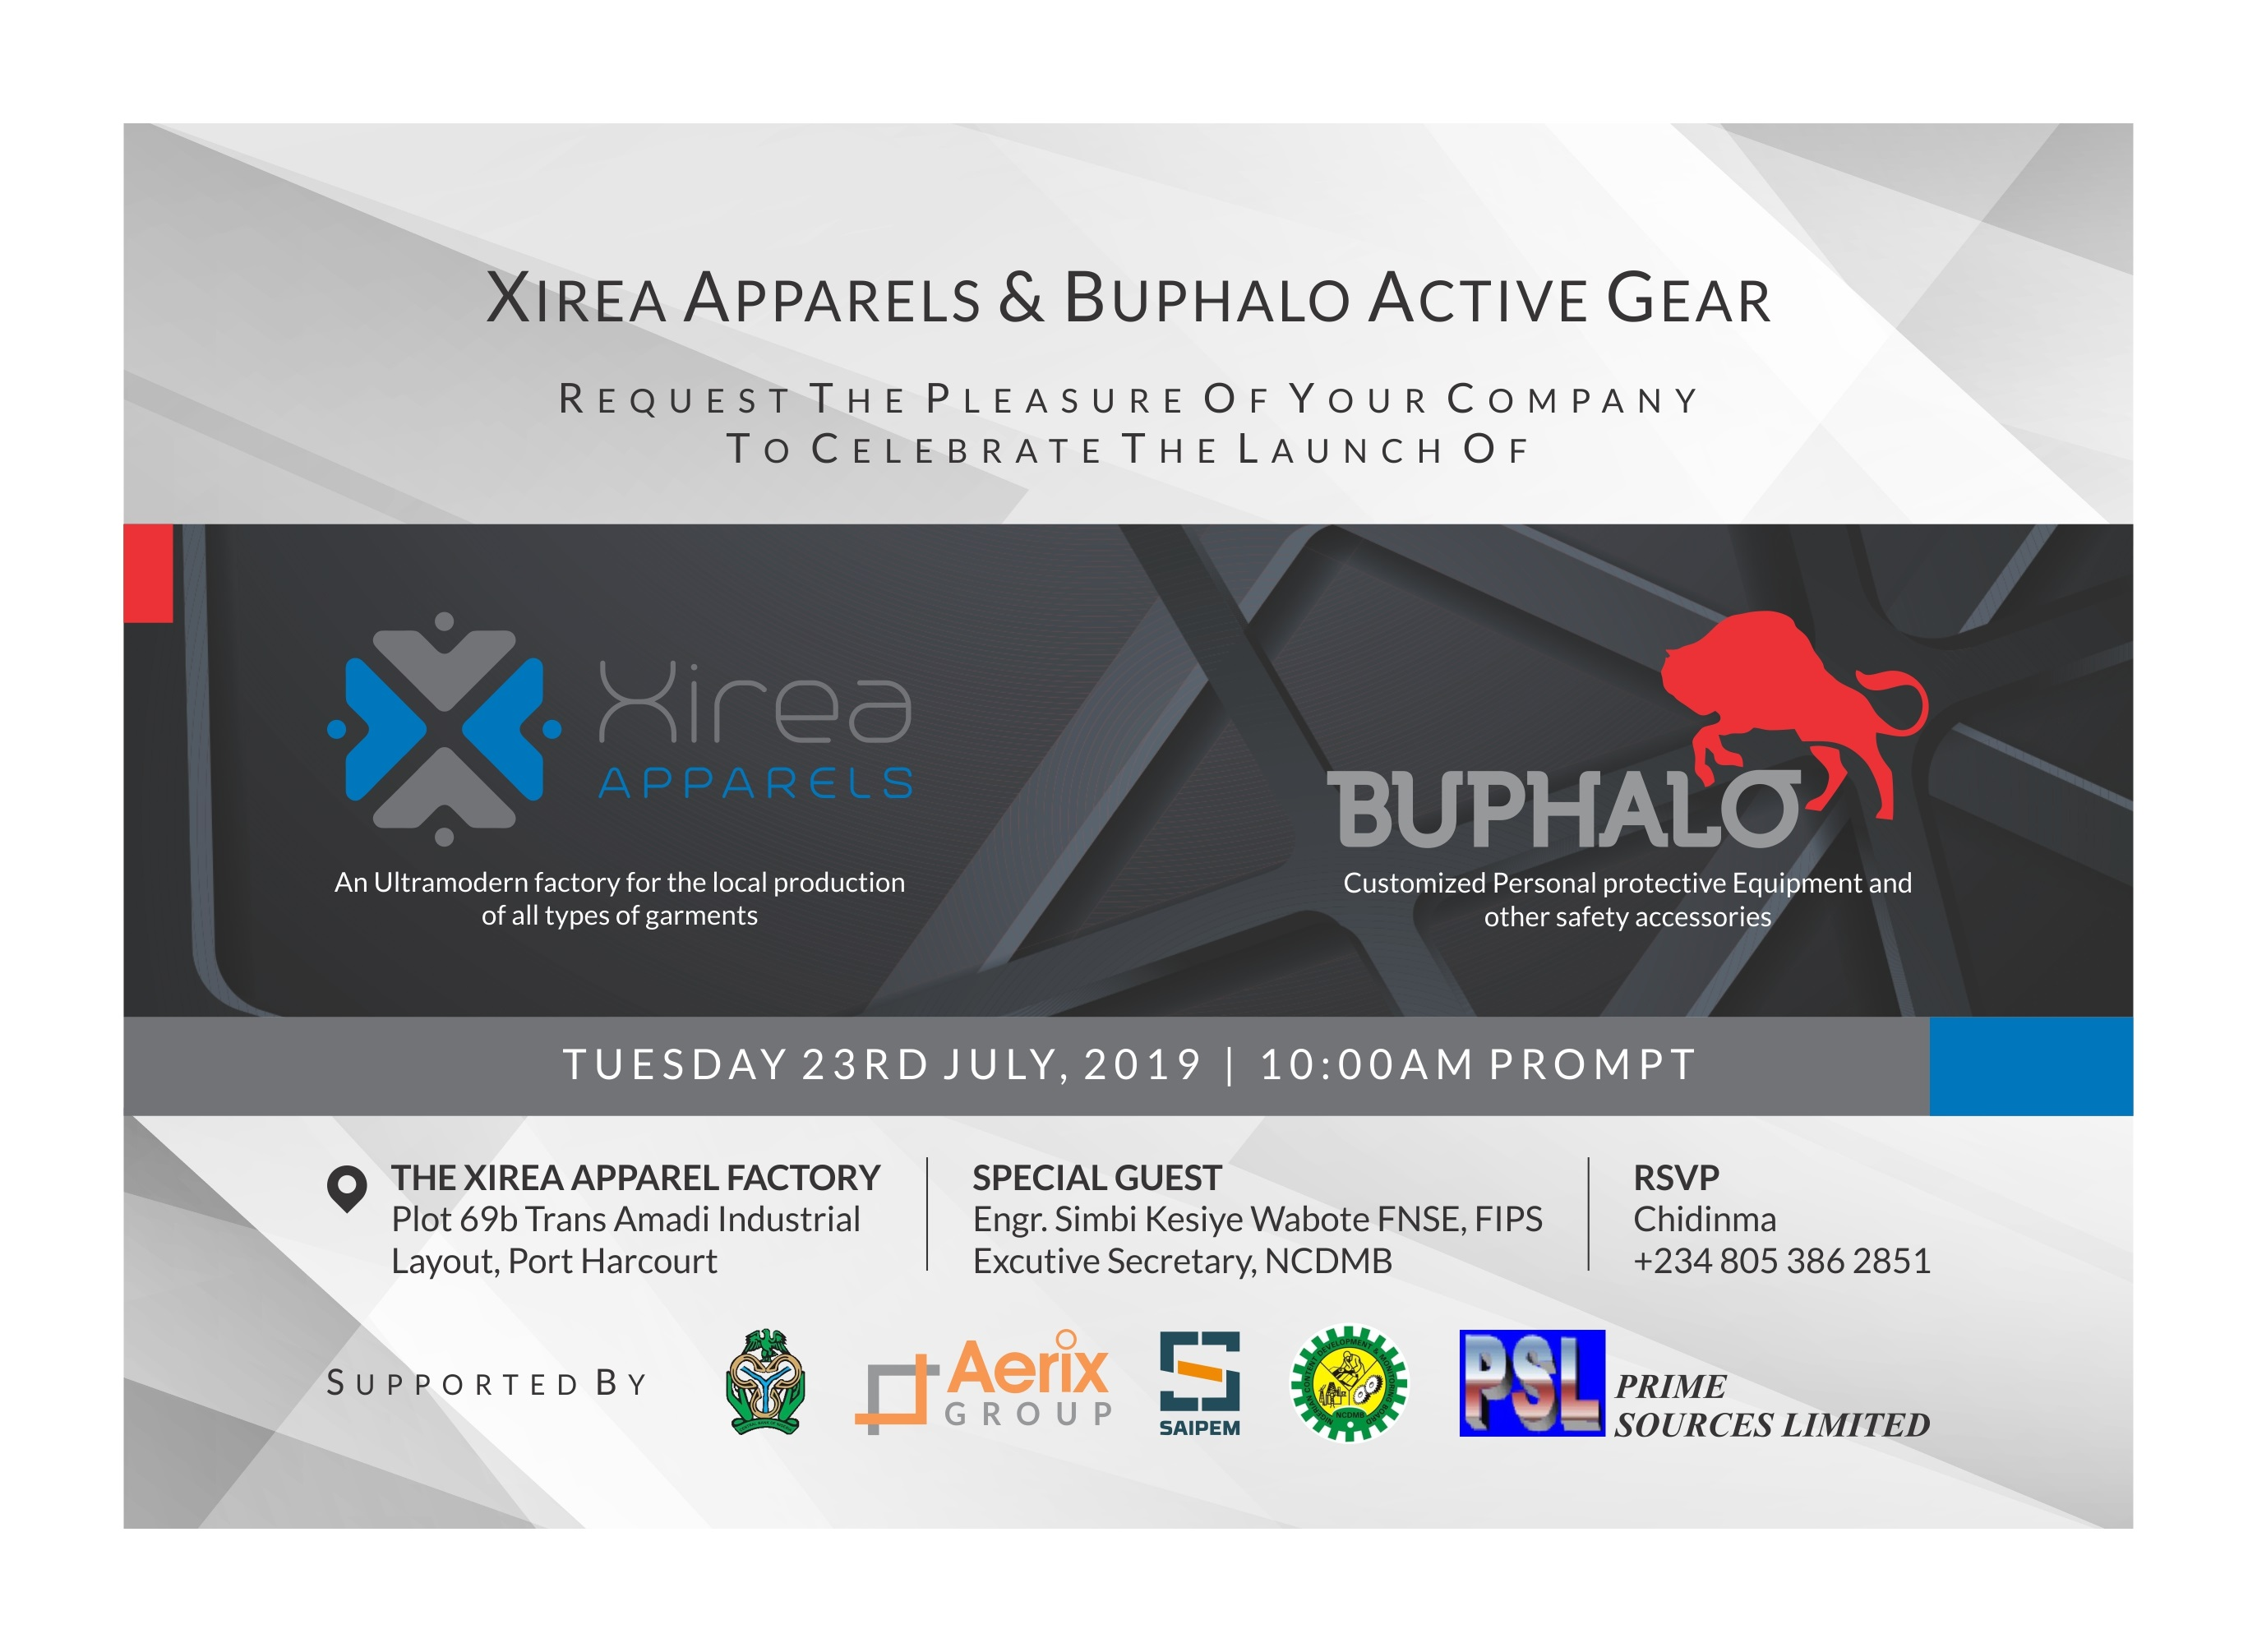 Xirea Apparels makes Major Business Moves as it Launches its State-of-the-art Garment Manufacturing Facility | July 23rd